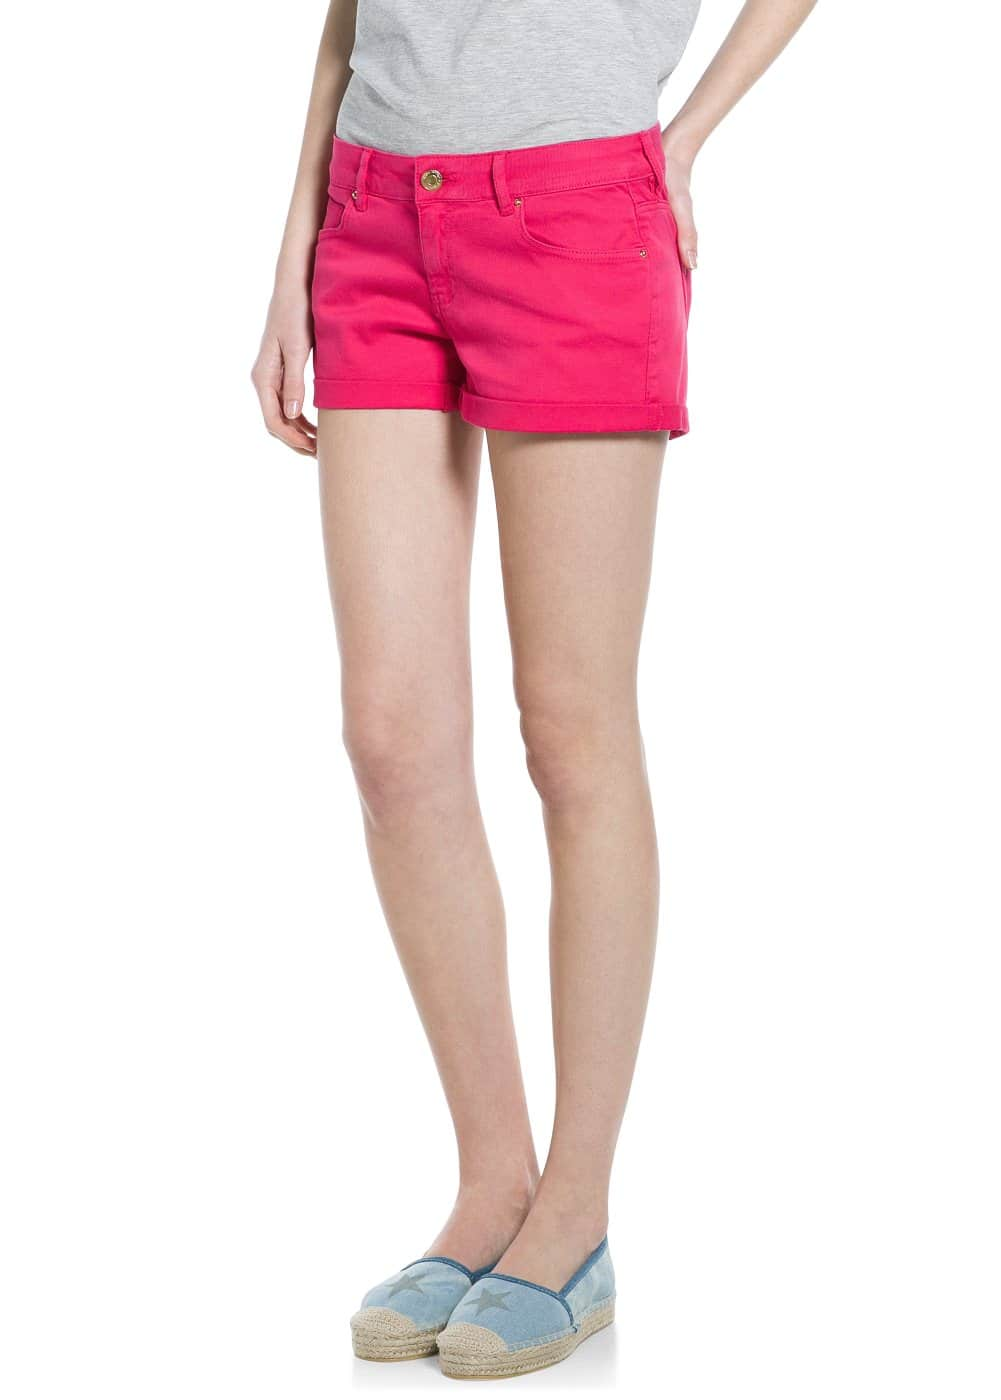 Rolled-up hem shorts